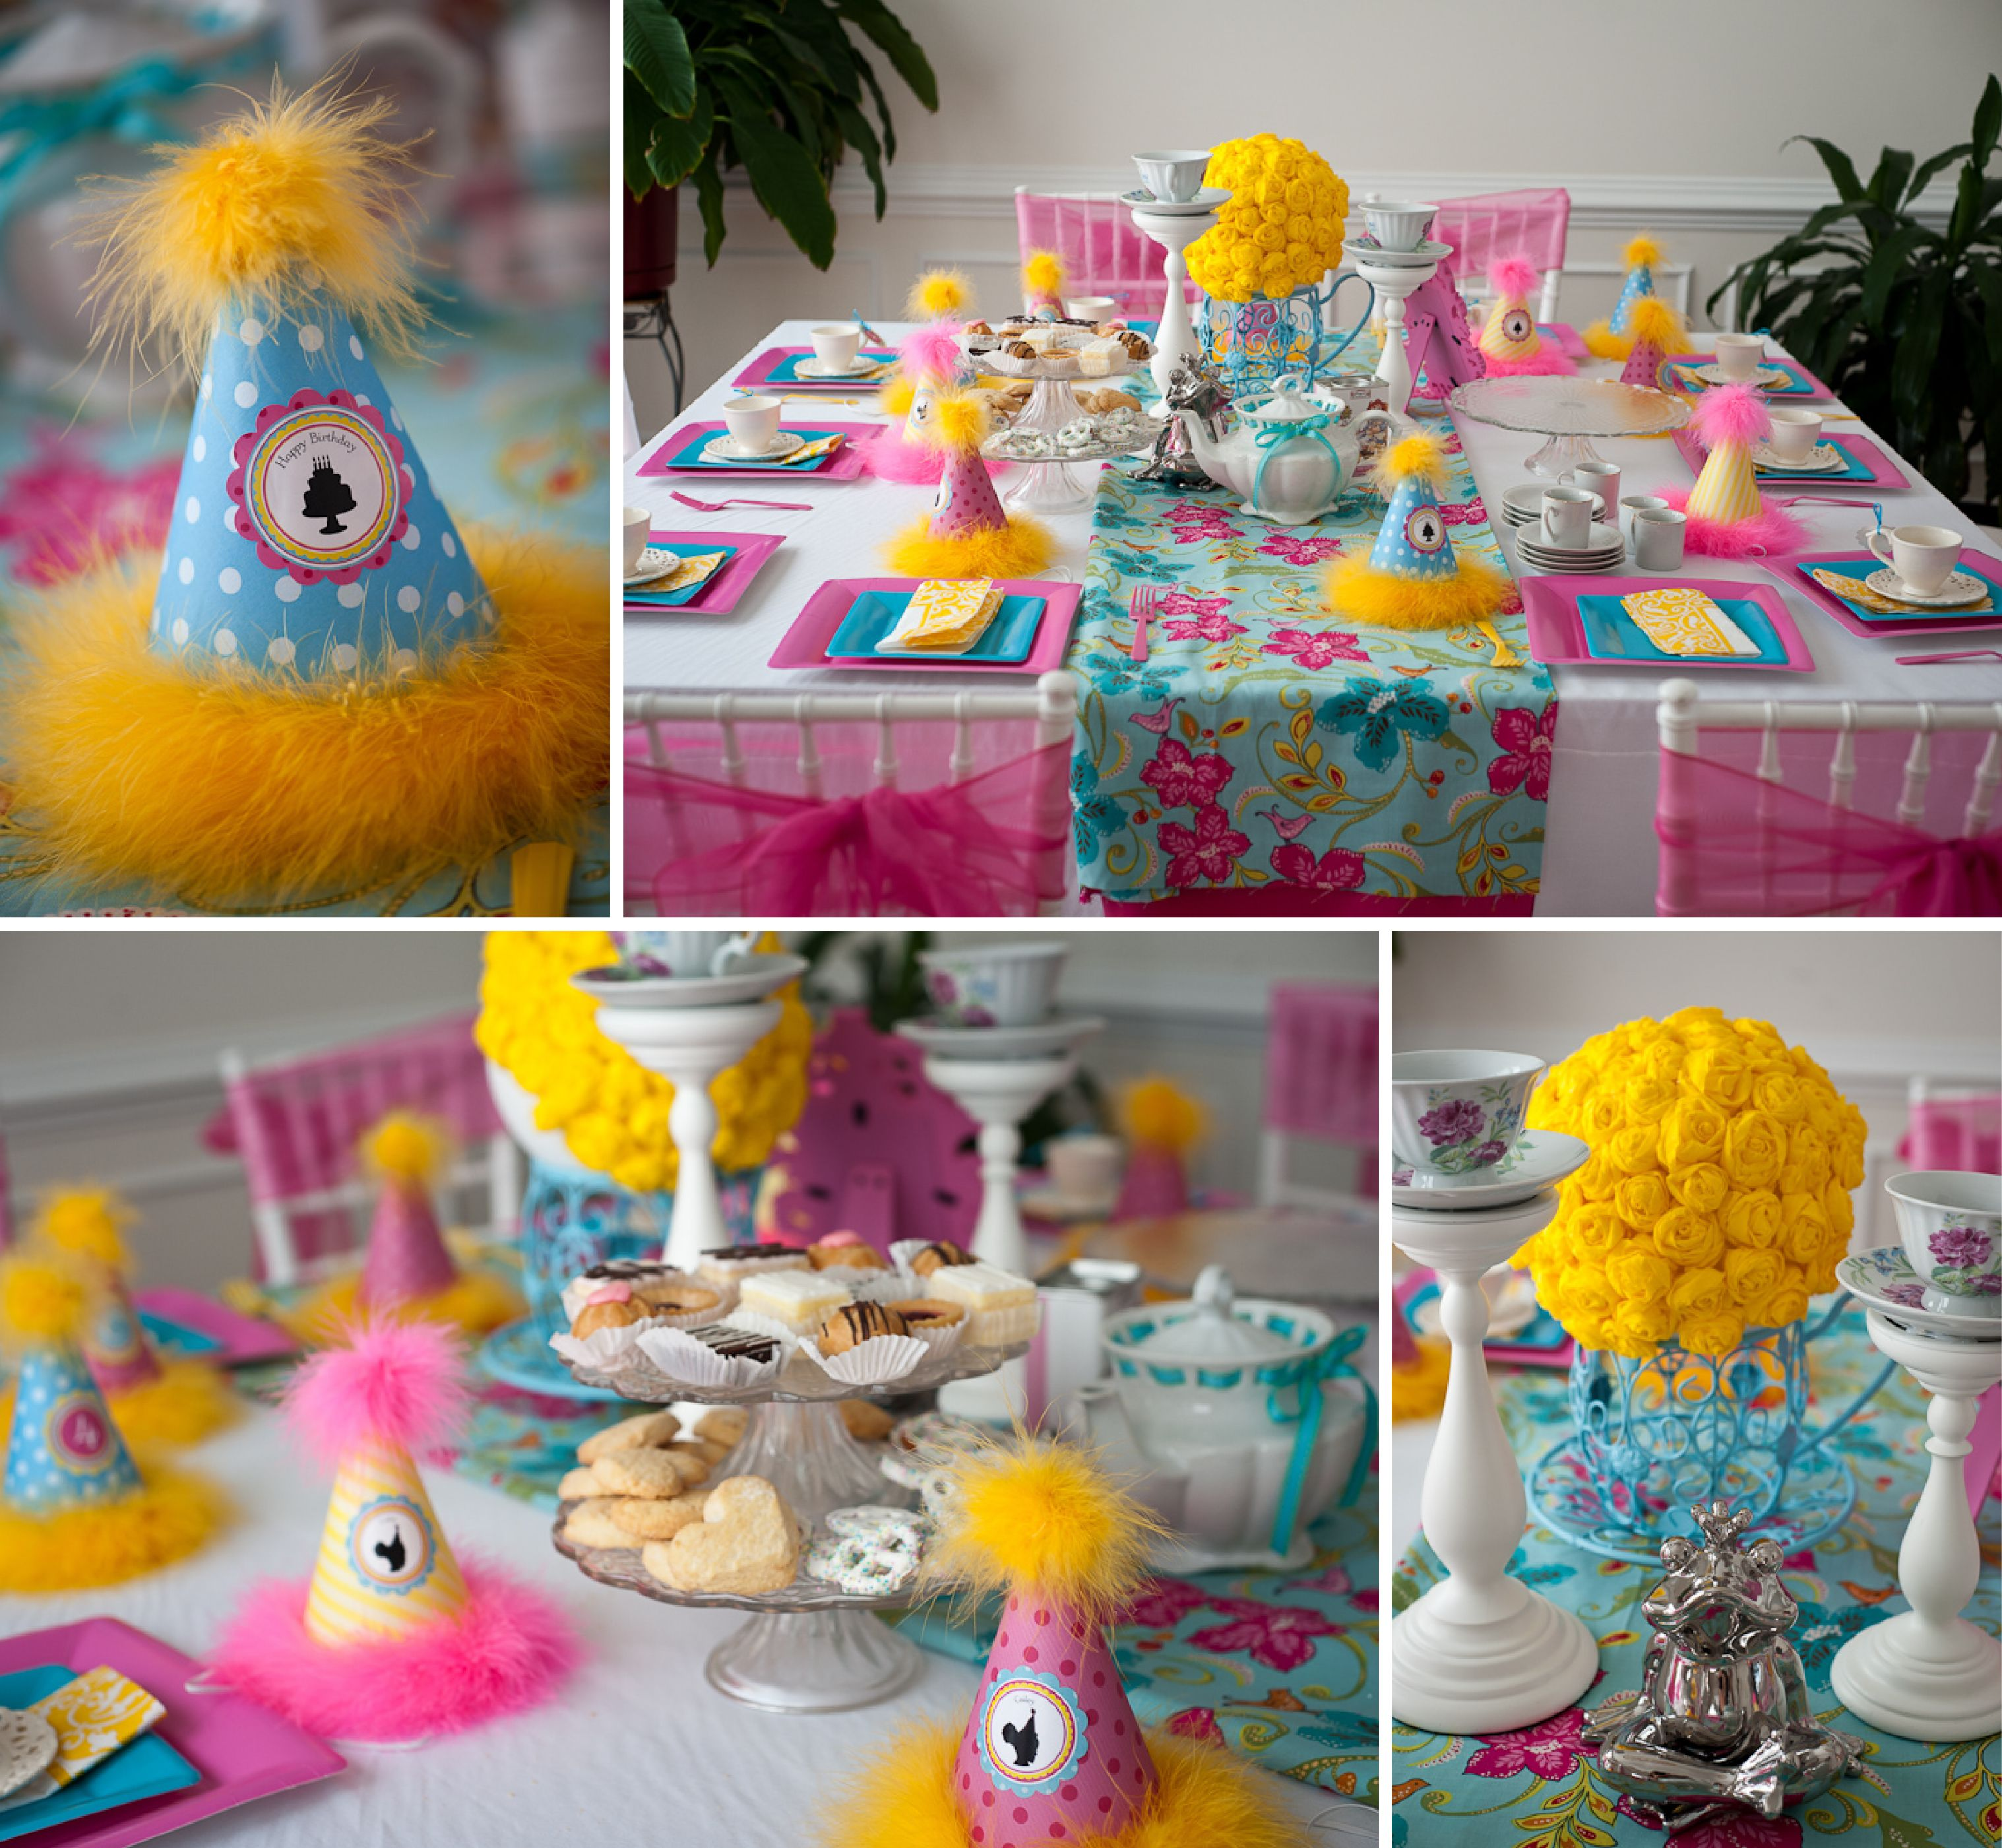 tea doll party room and table setup 2 Party ideas Pinterest